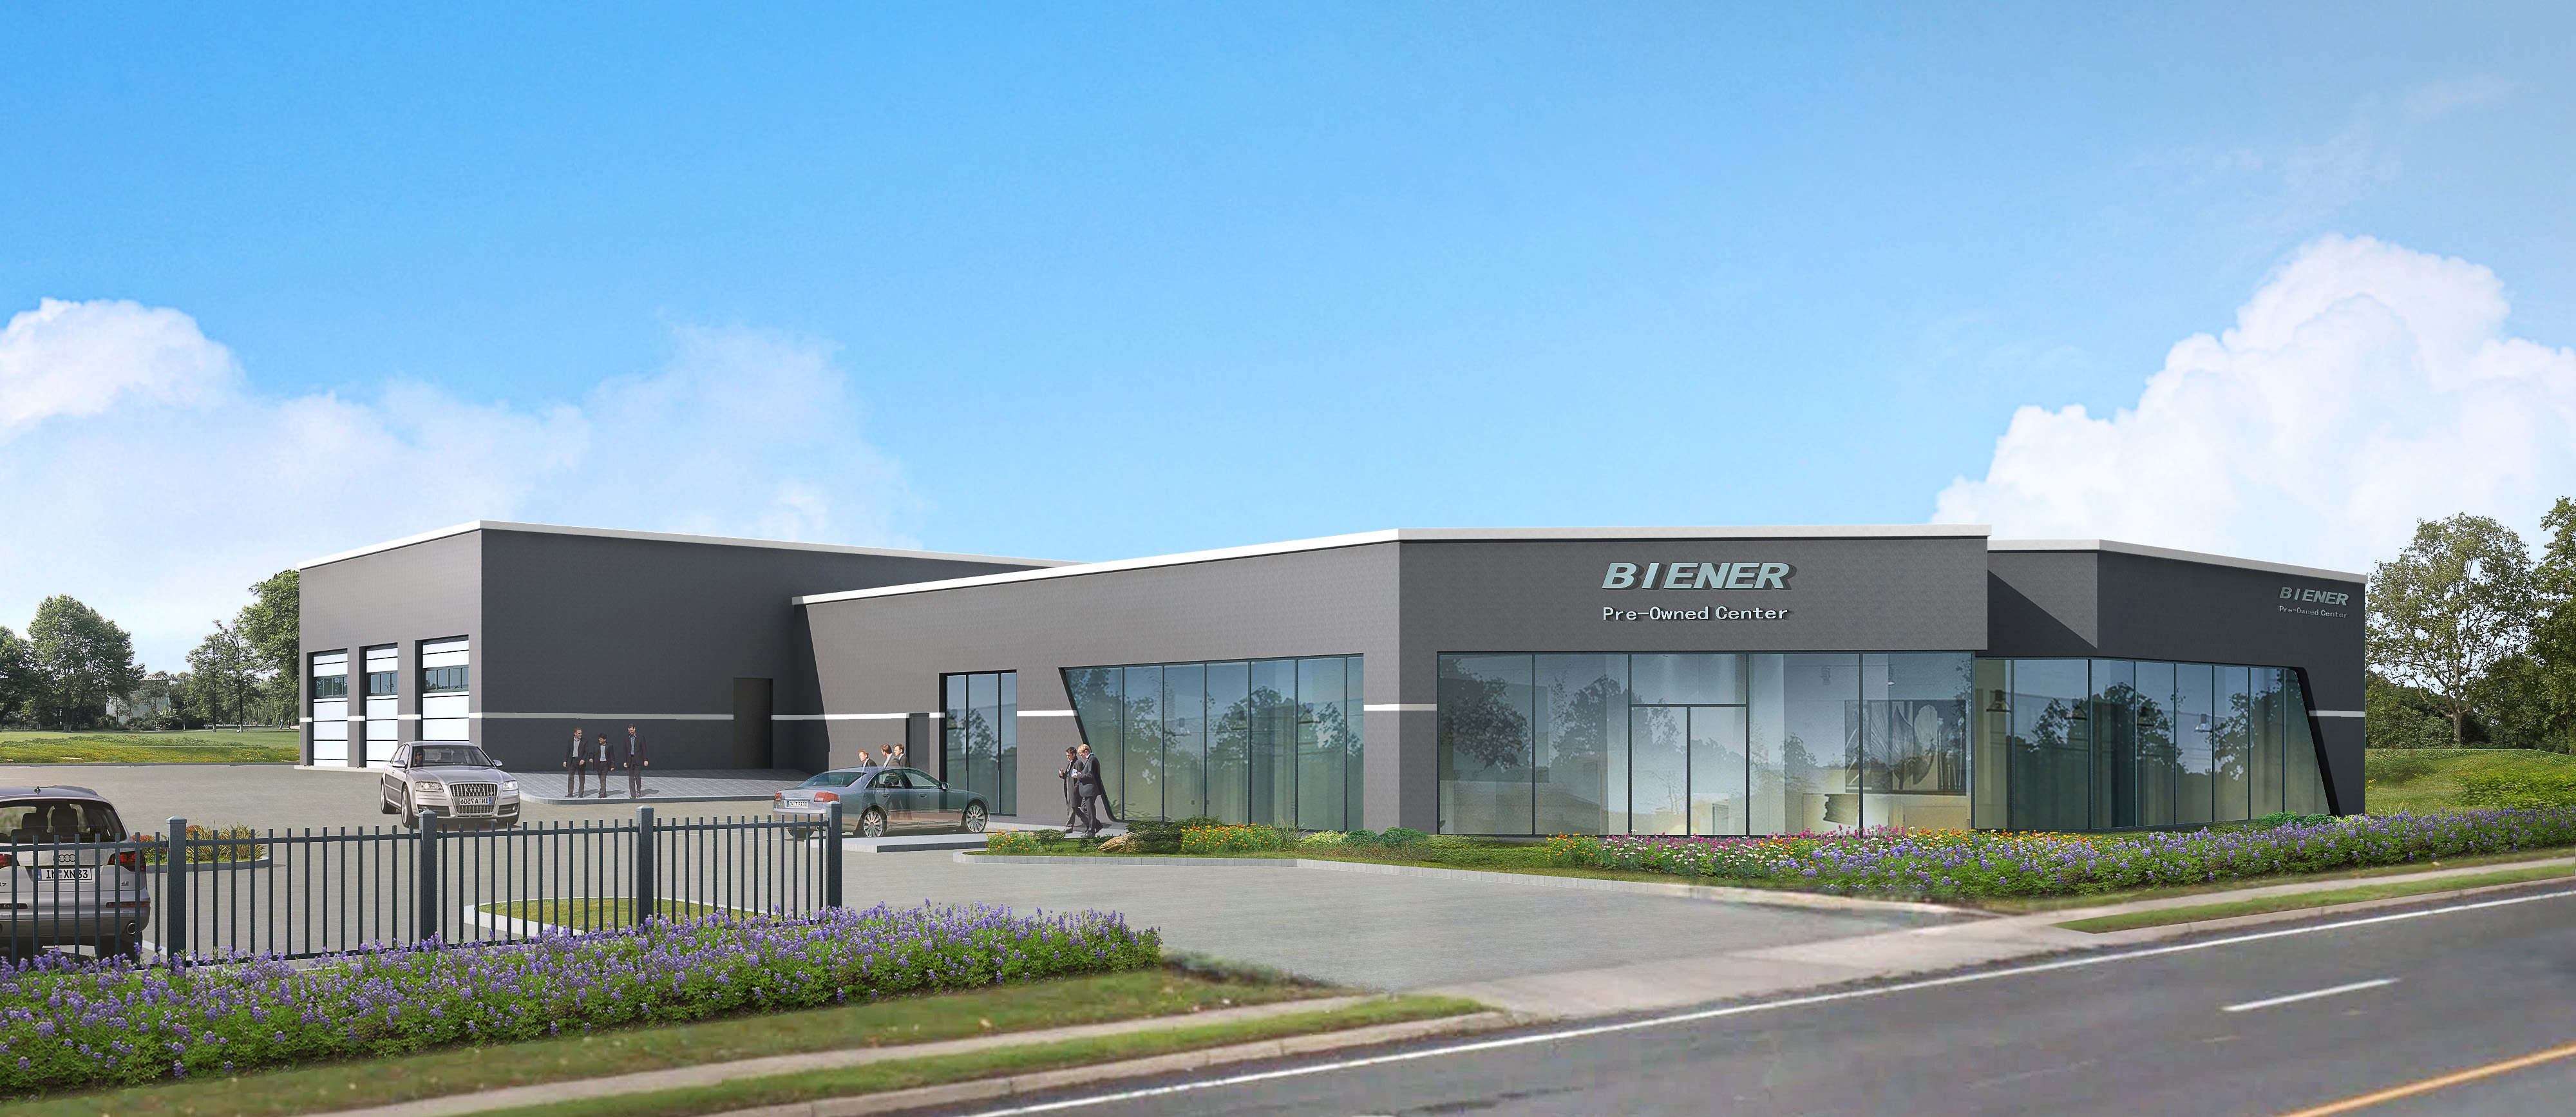 Former Steakhouse Property To Be Site Of Biener Audi